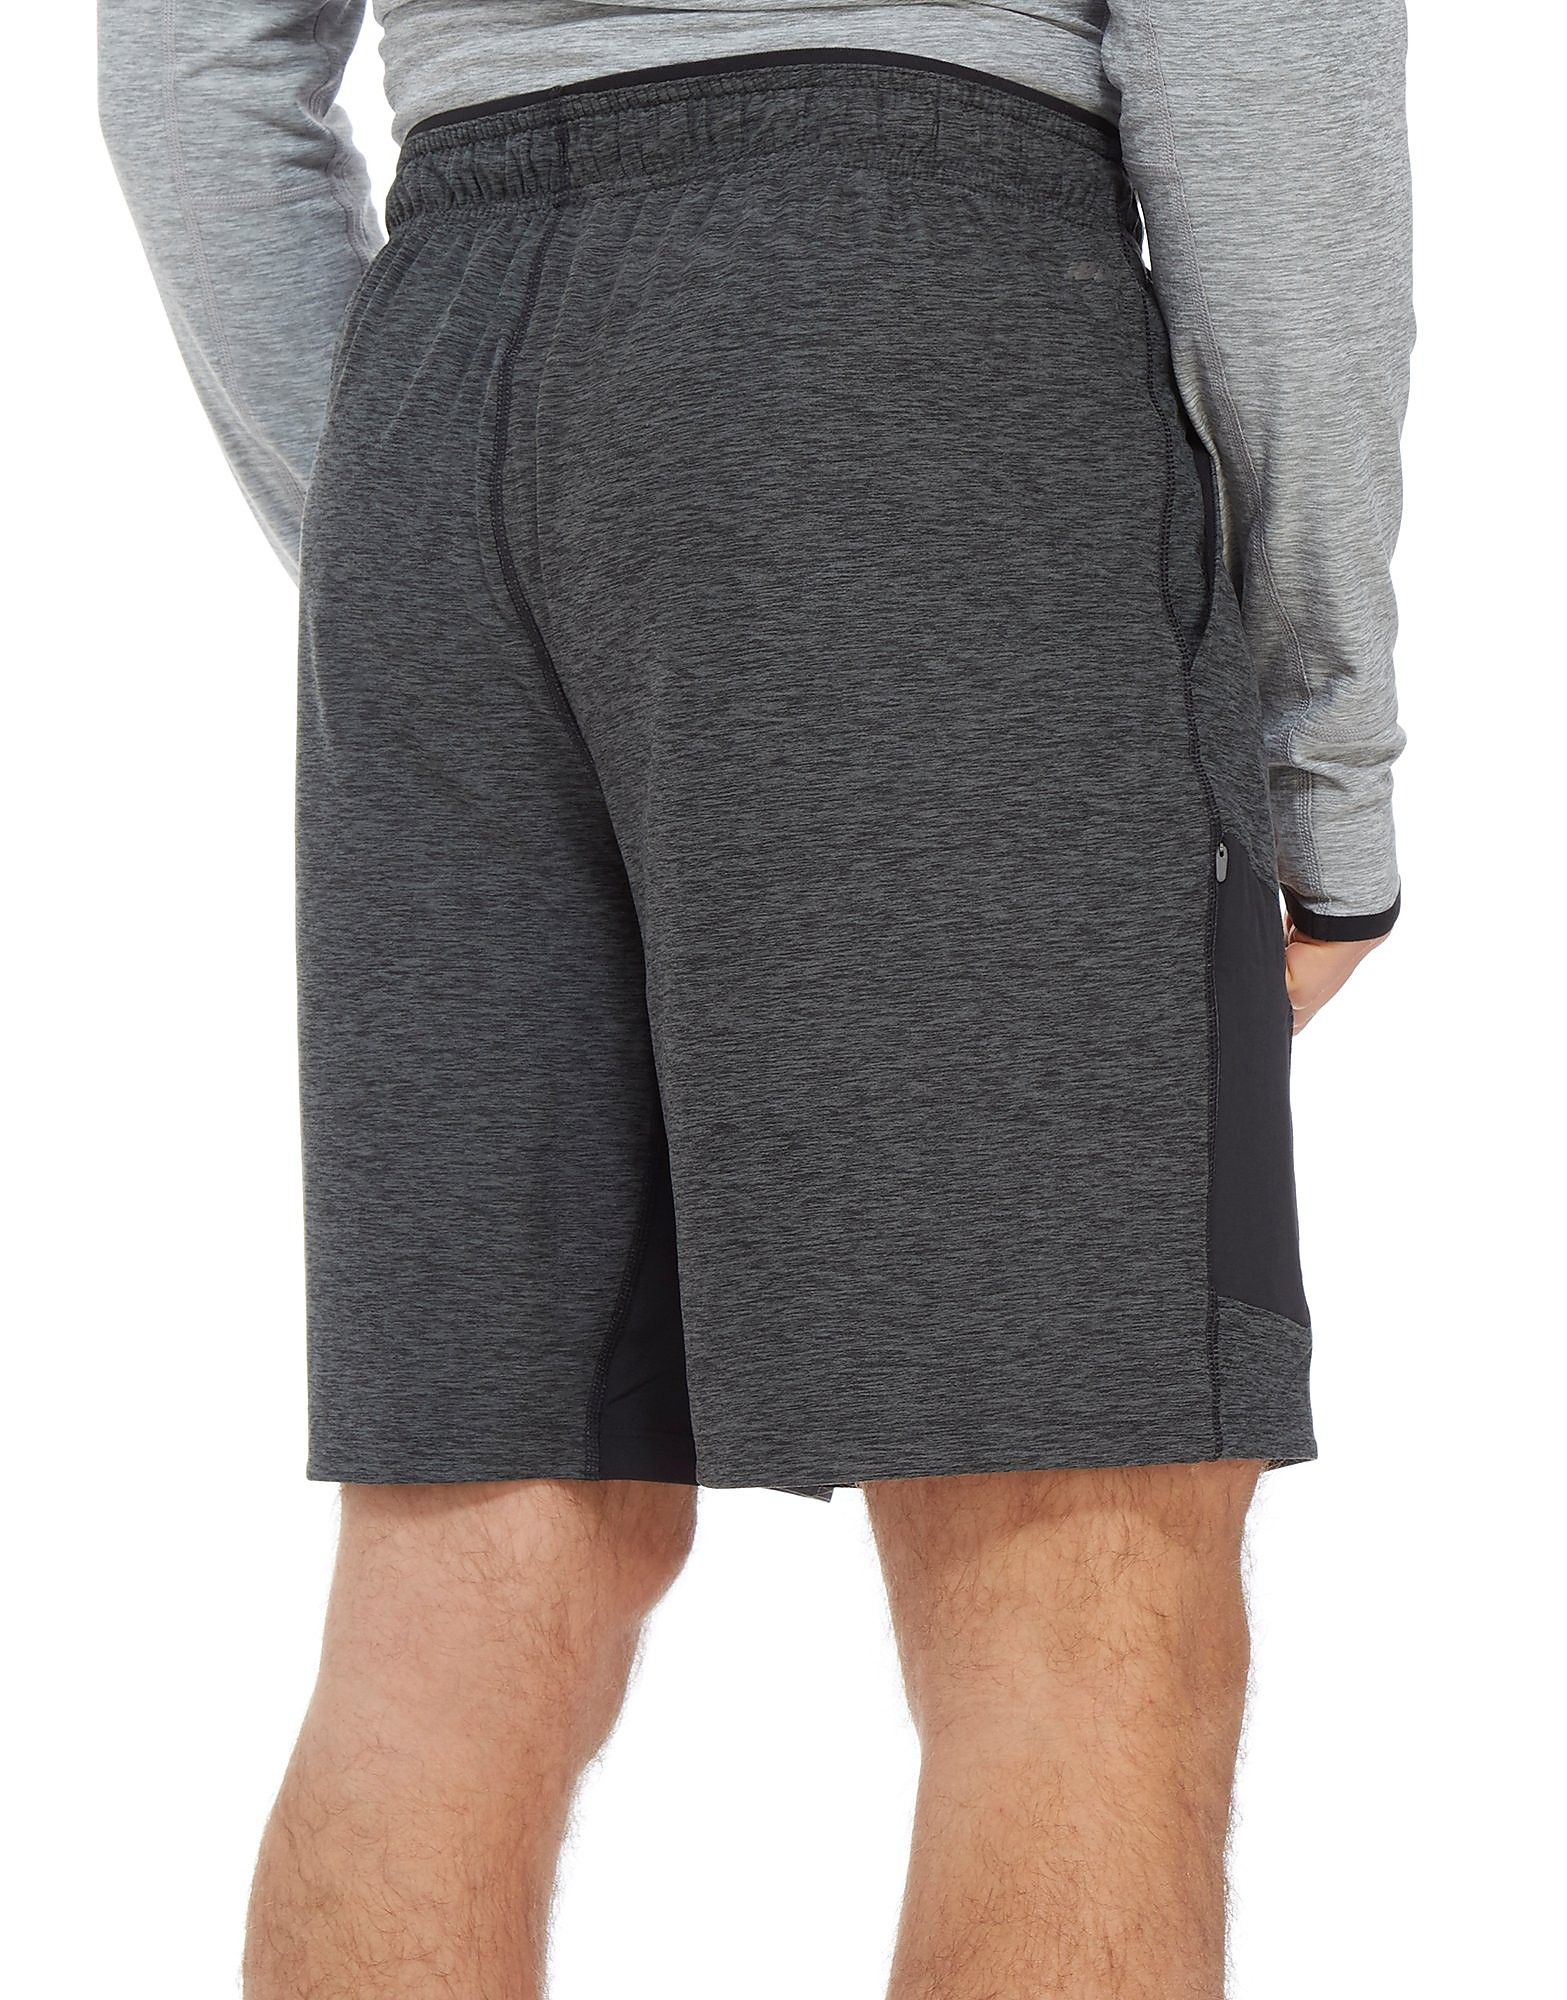 New Balance Anticipate Shorts